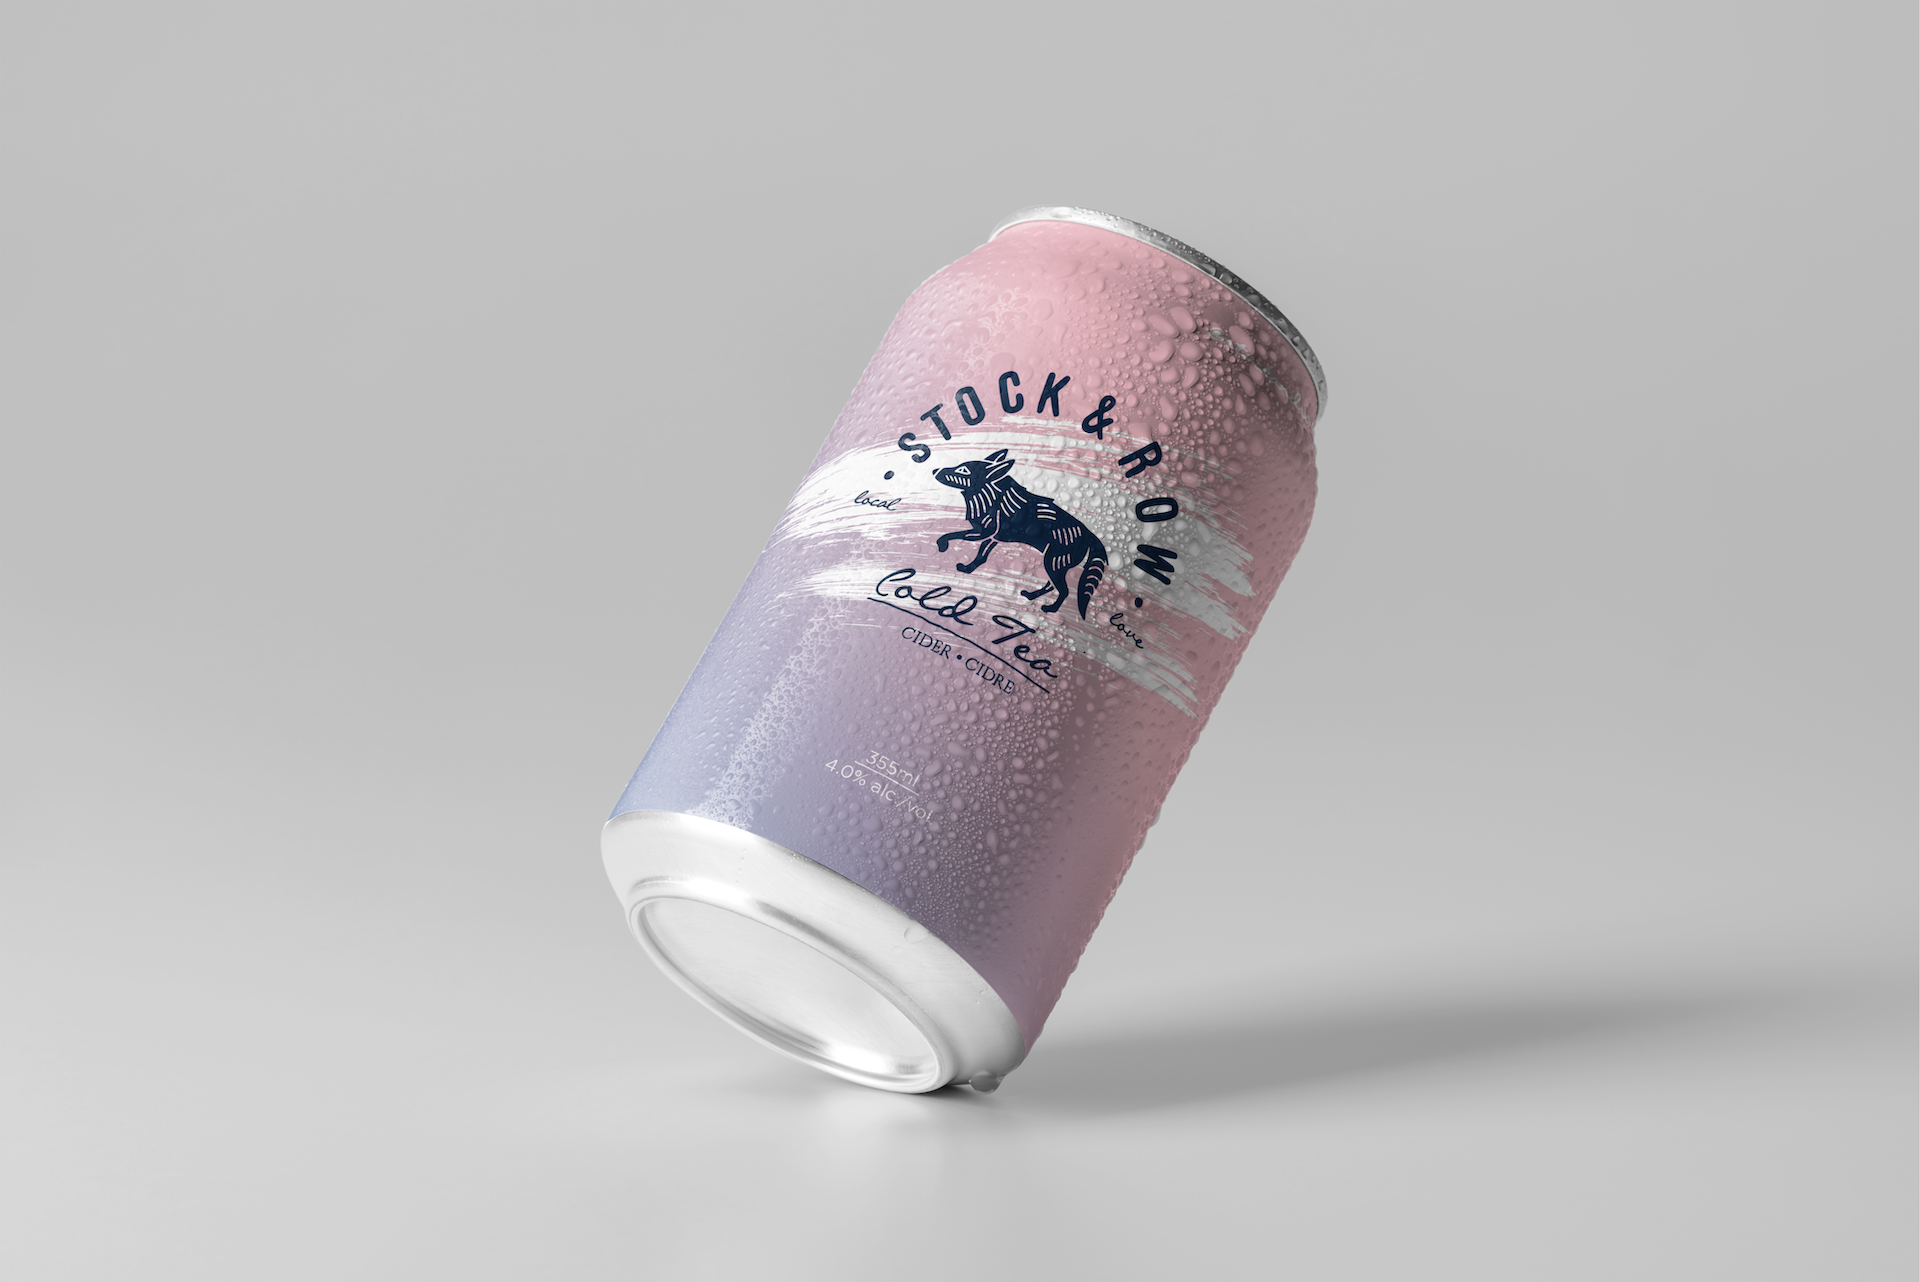 Ace Digital created can packaging for Stock & Row